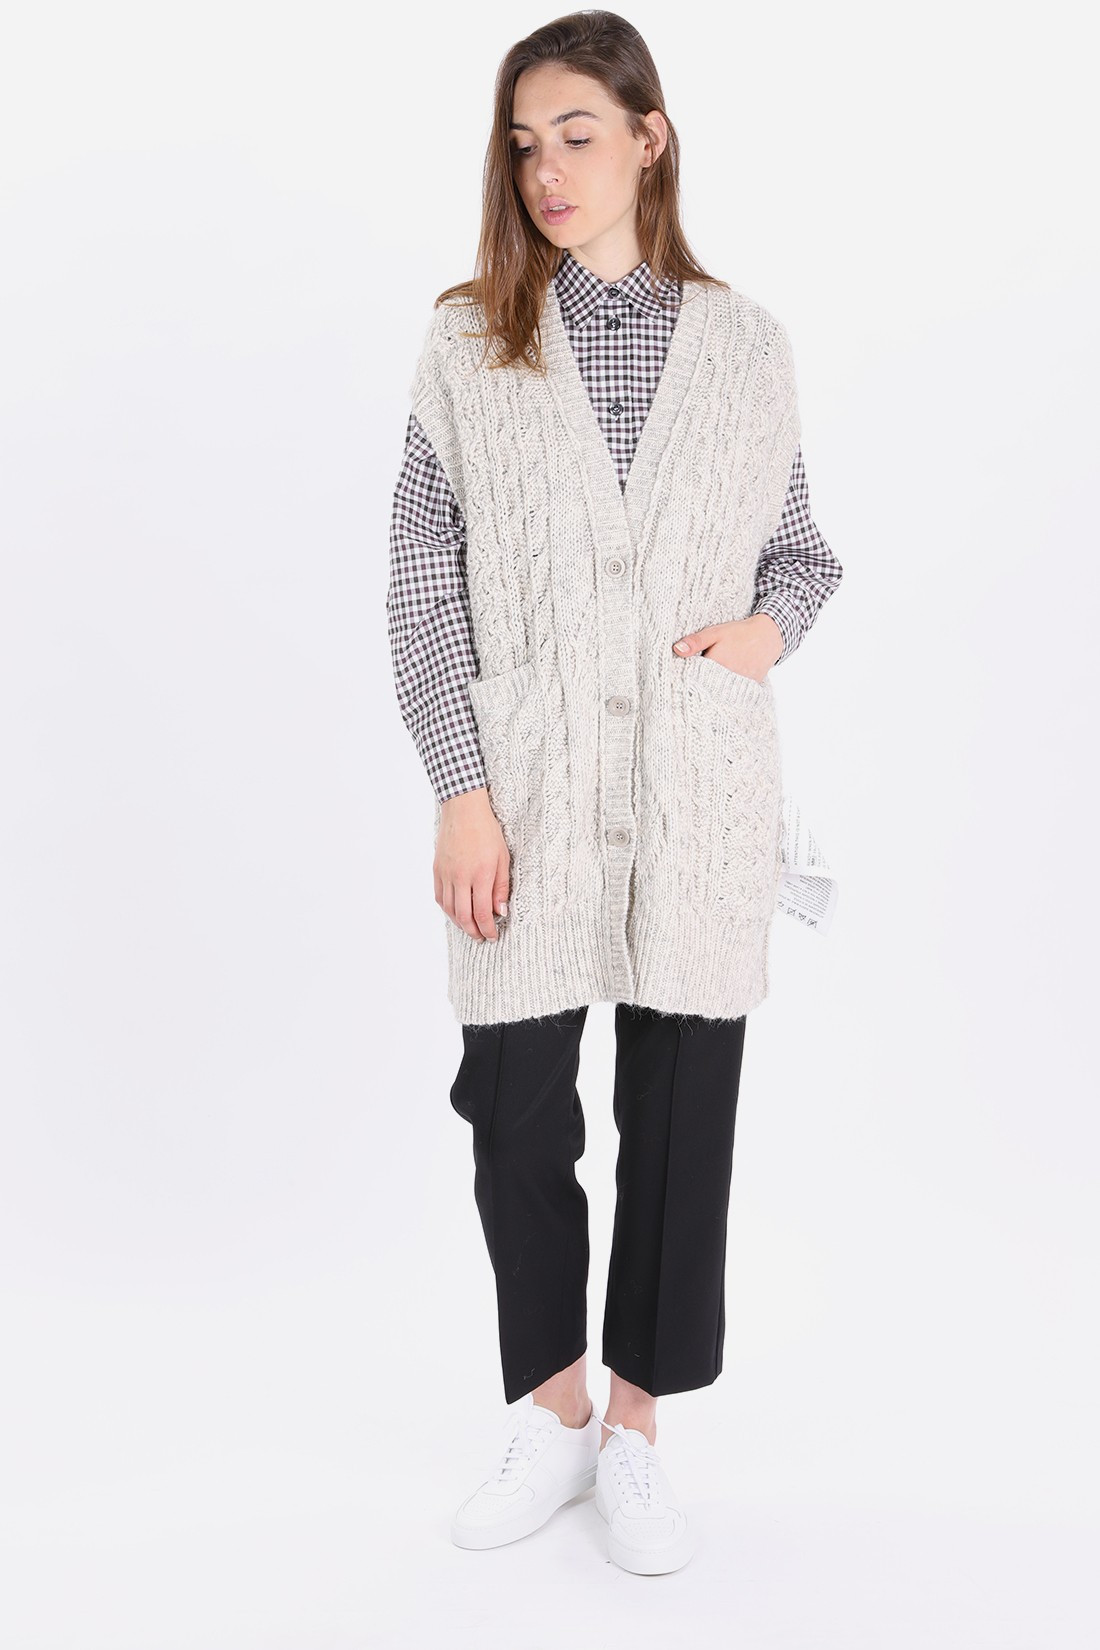 MM6 MAISON MARGIELA FOR WOMAN / S52gp0033 knitted dress Heather grey